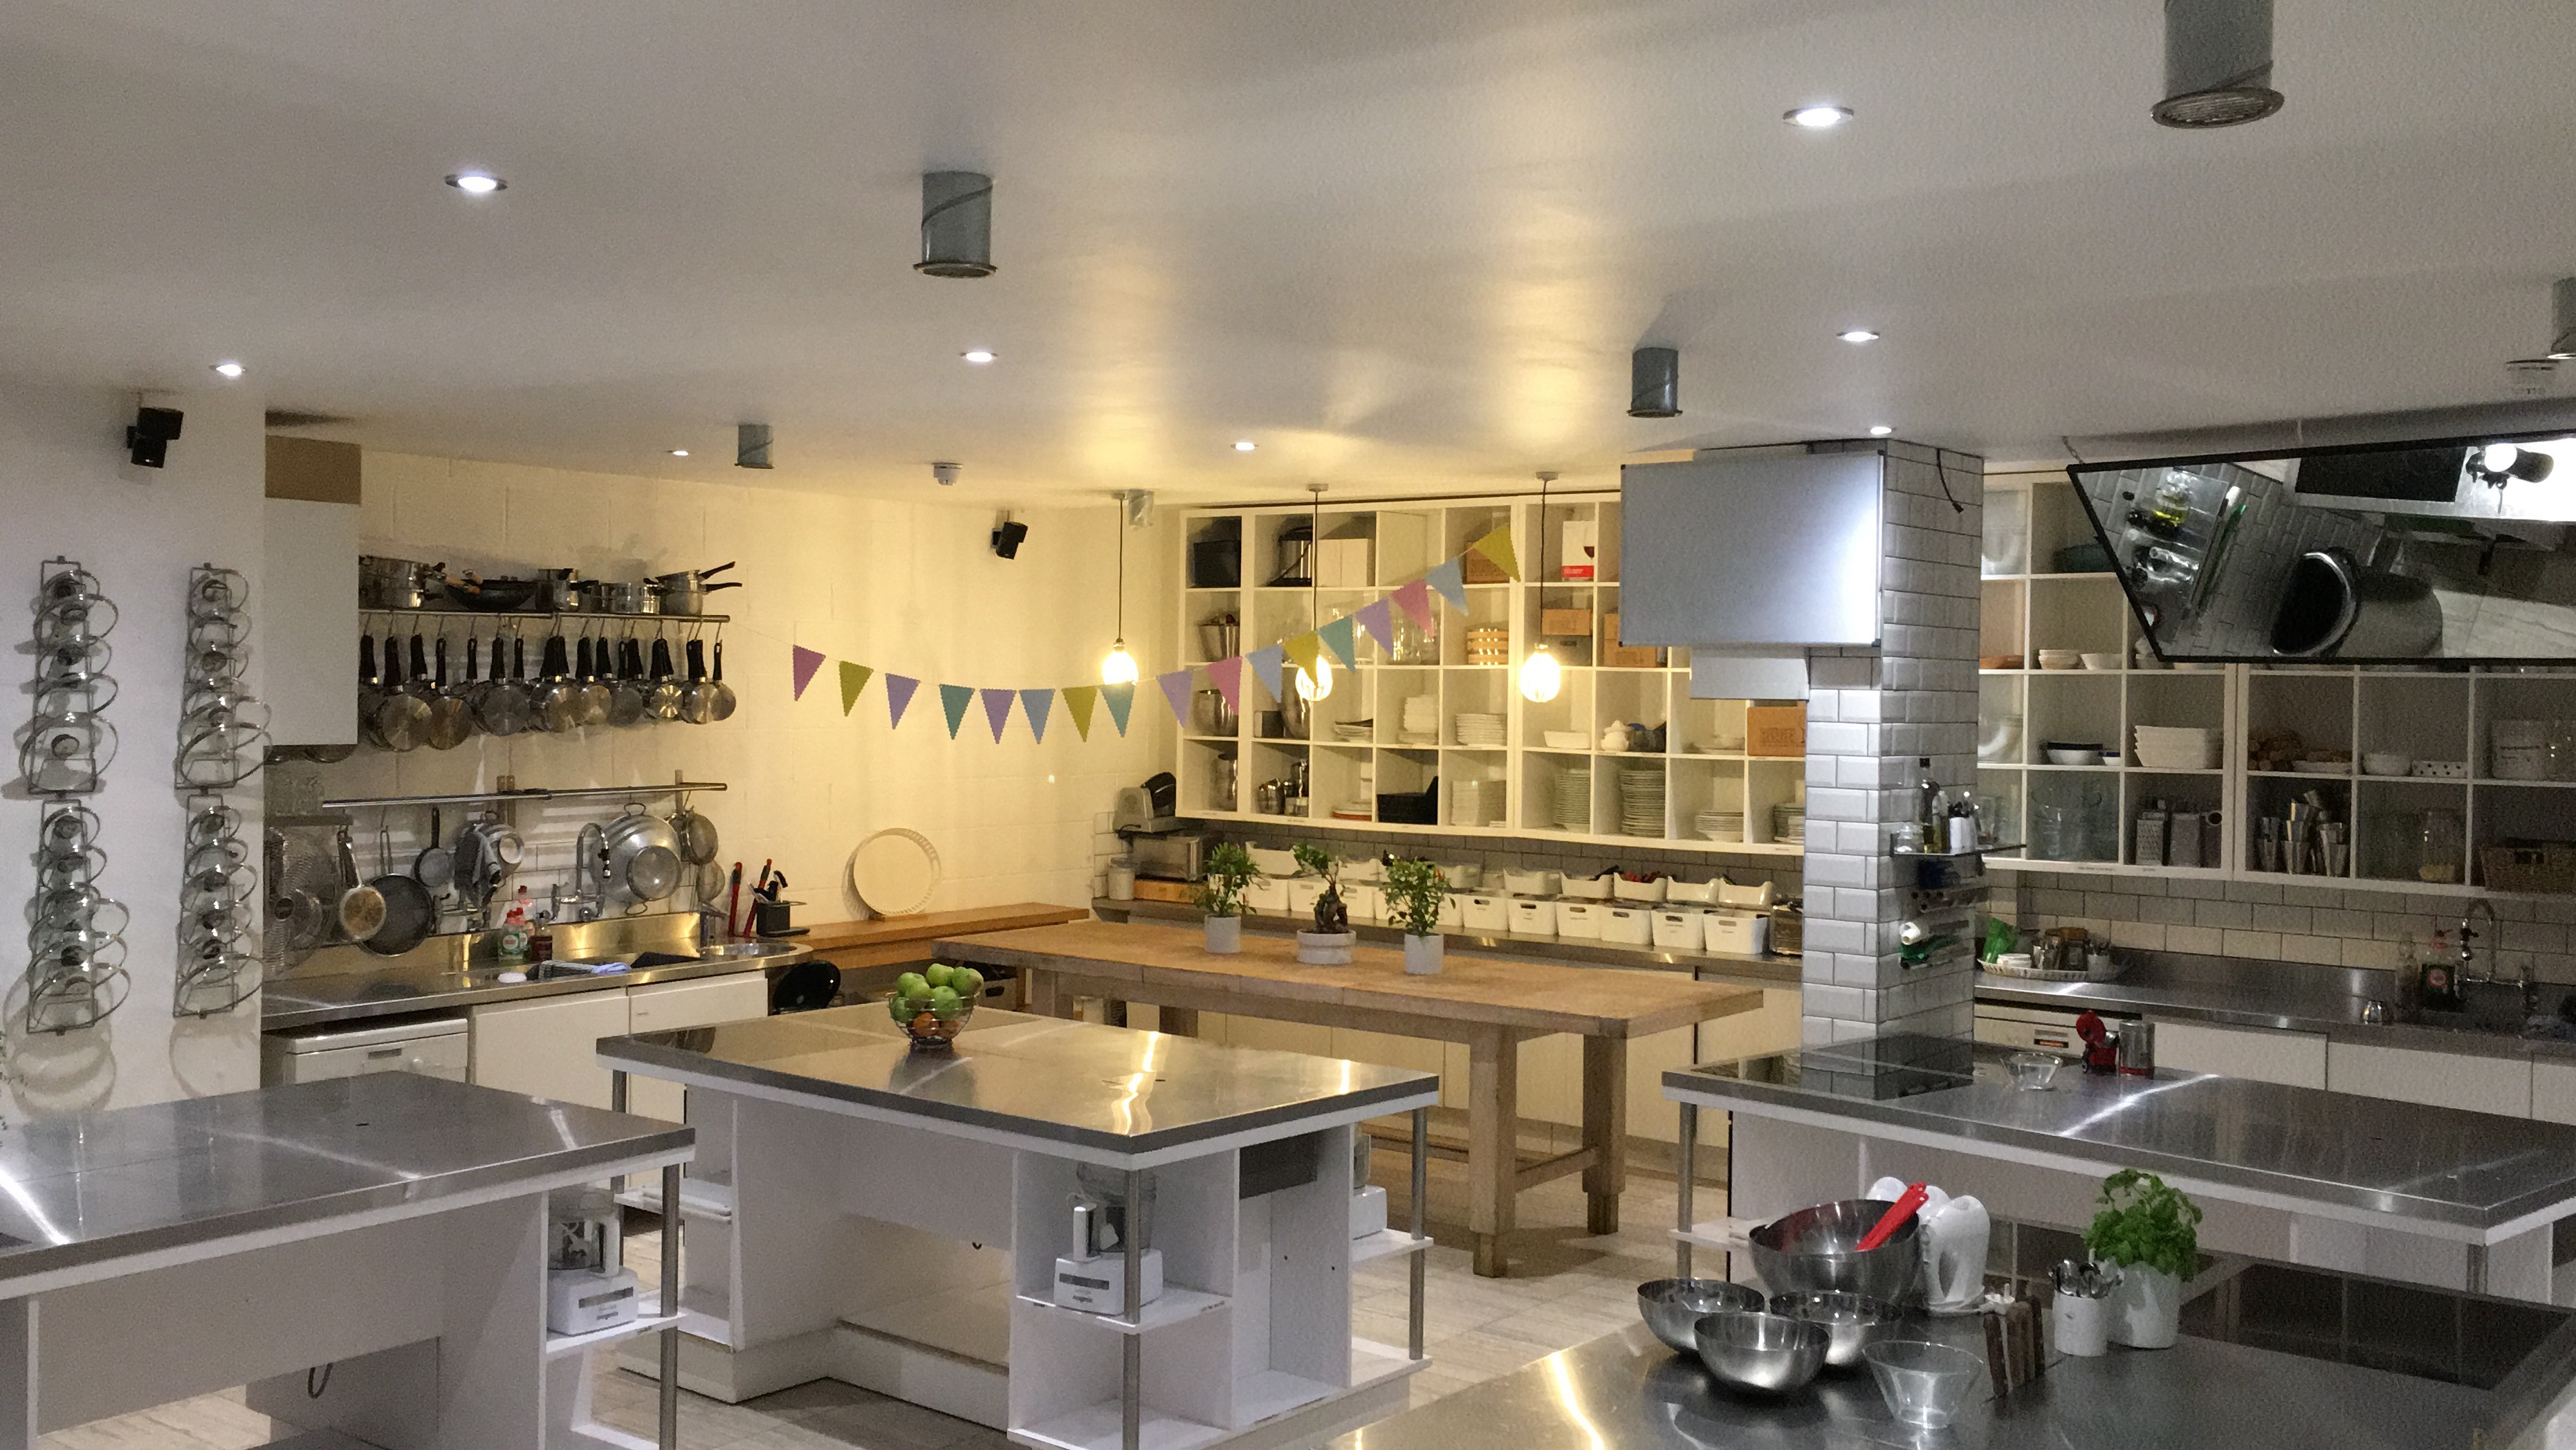 Italian Class in The City by The Avenue Cookery School - food in London